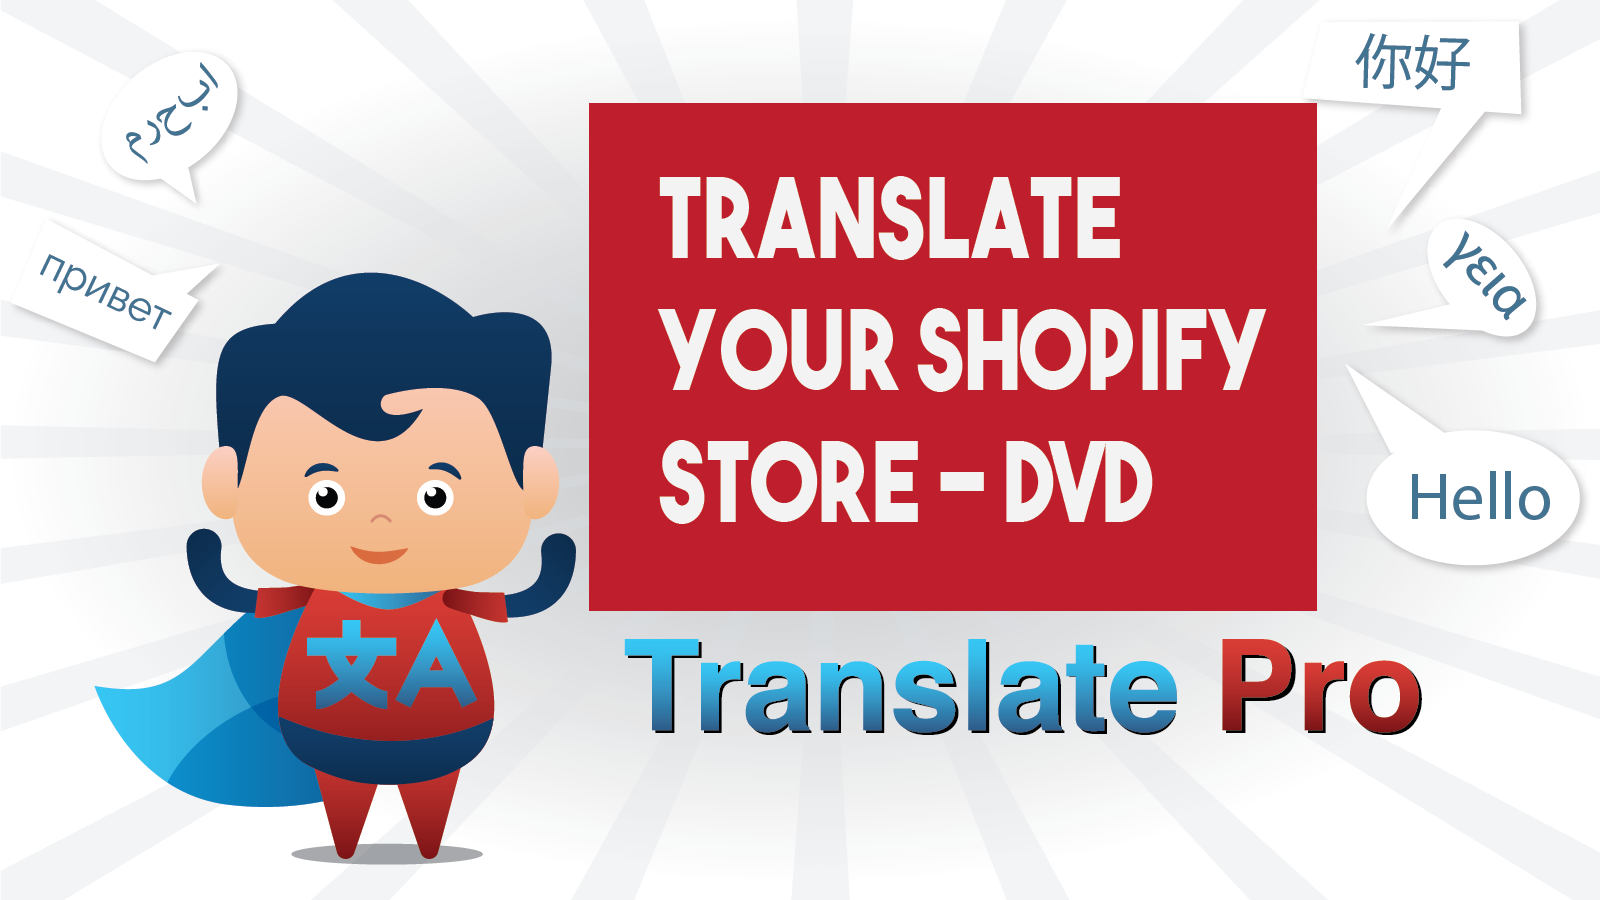 How To Translate Your Shopify Dvd Store